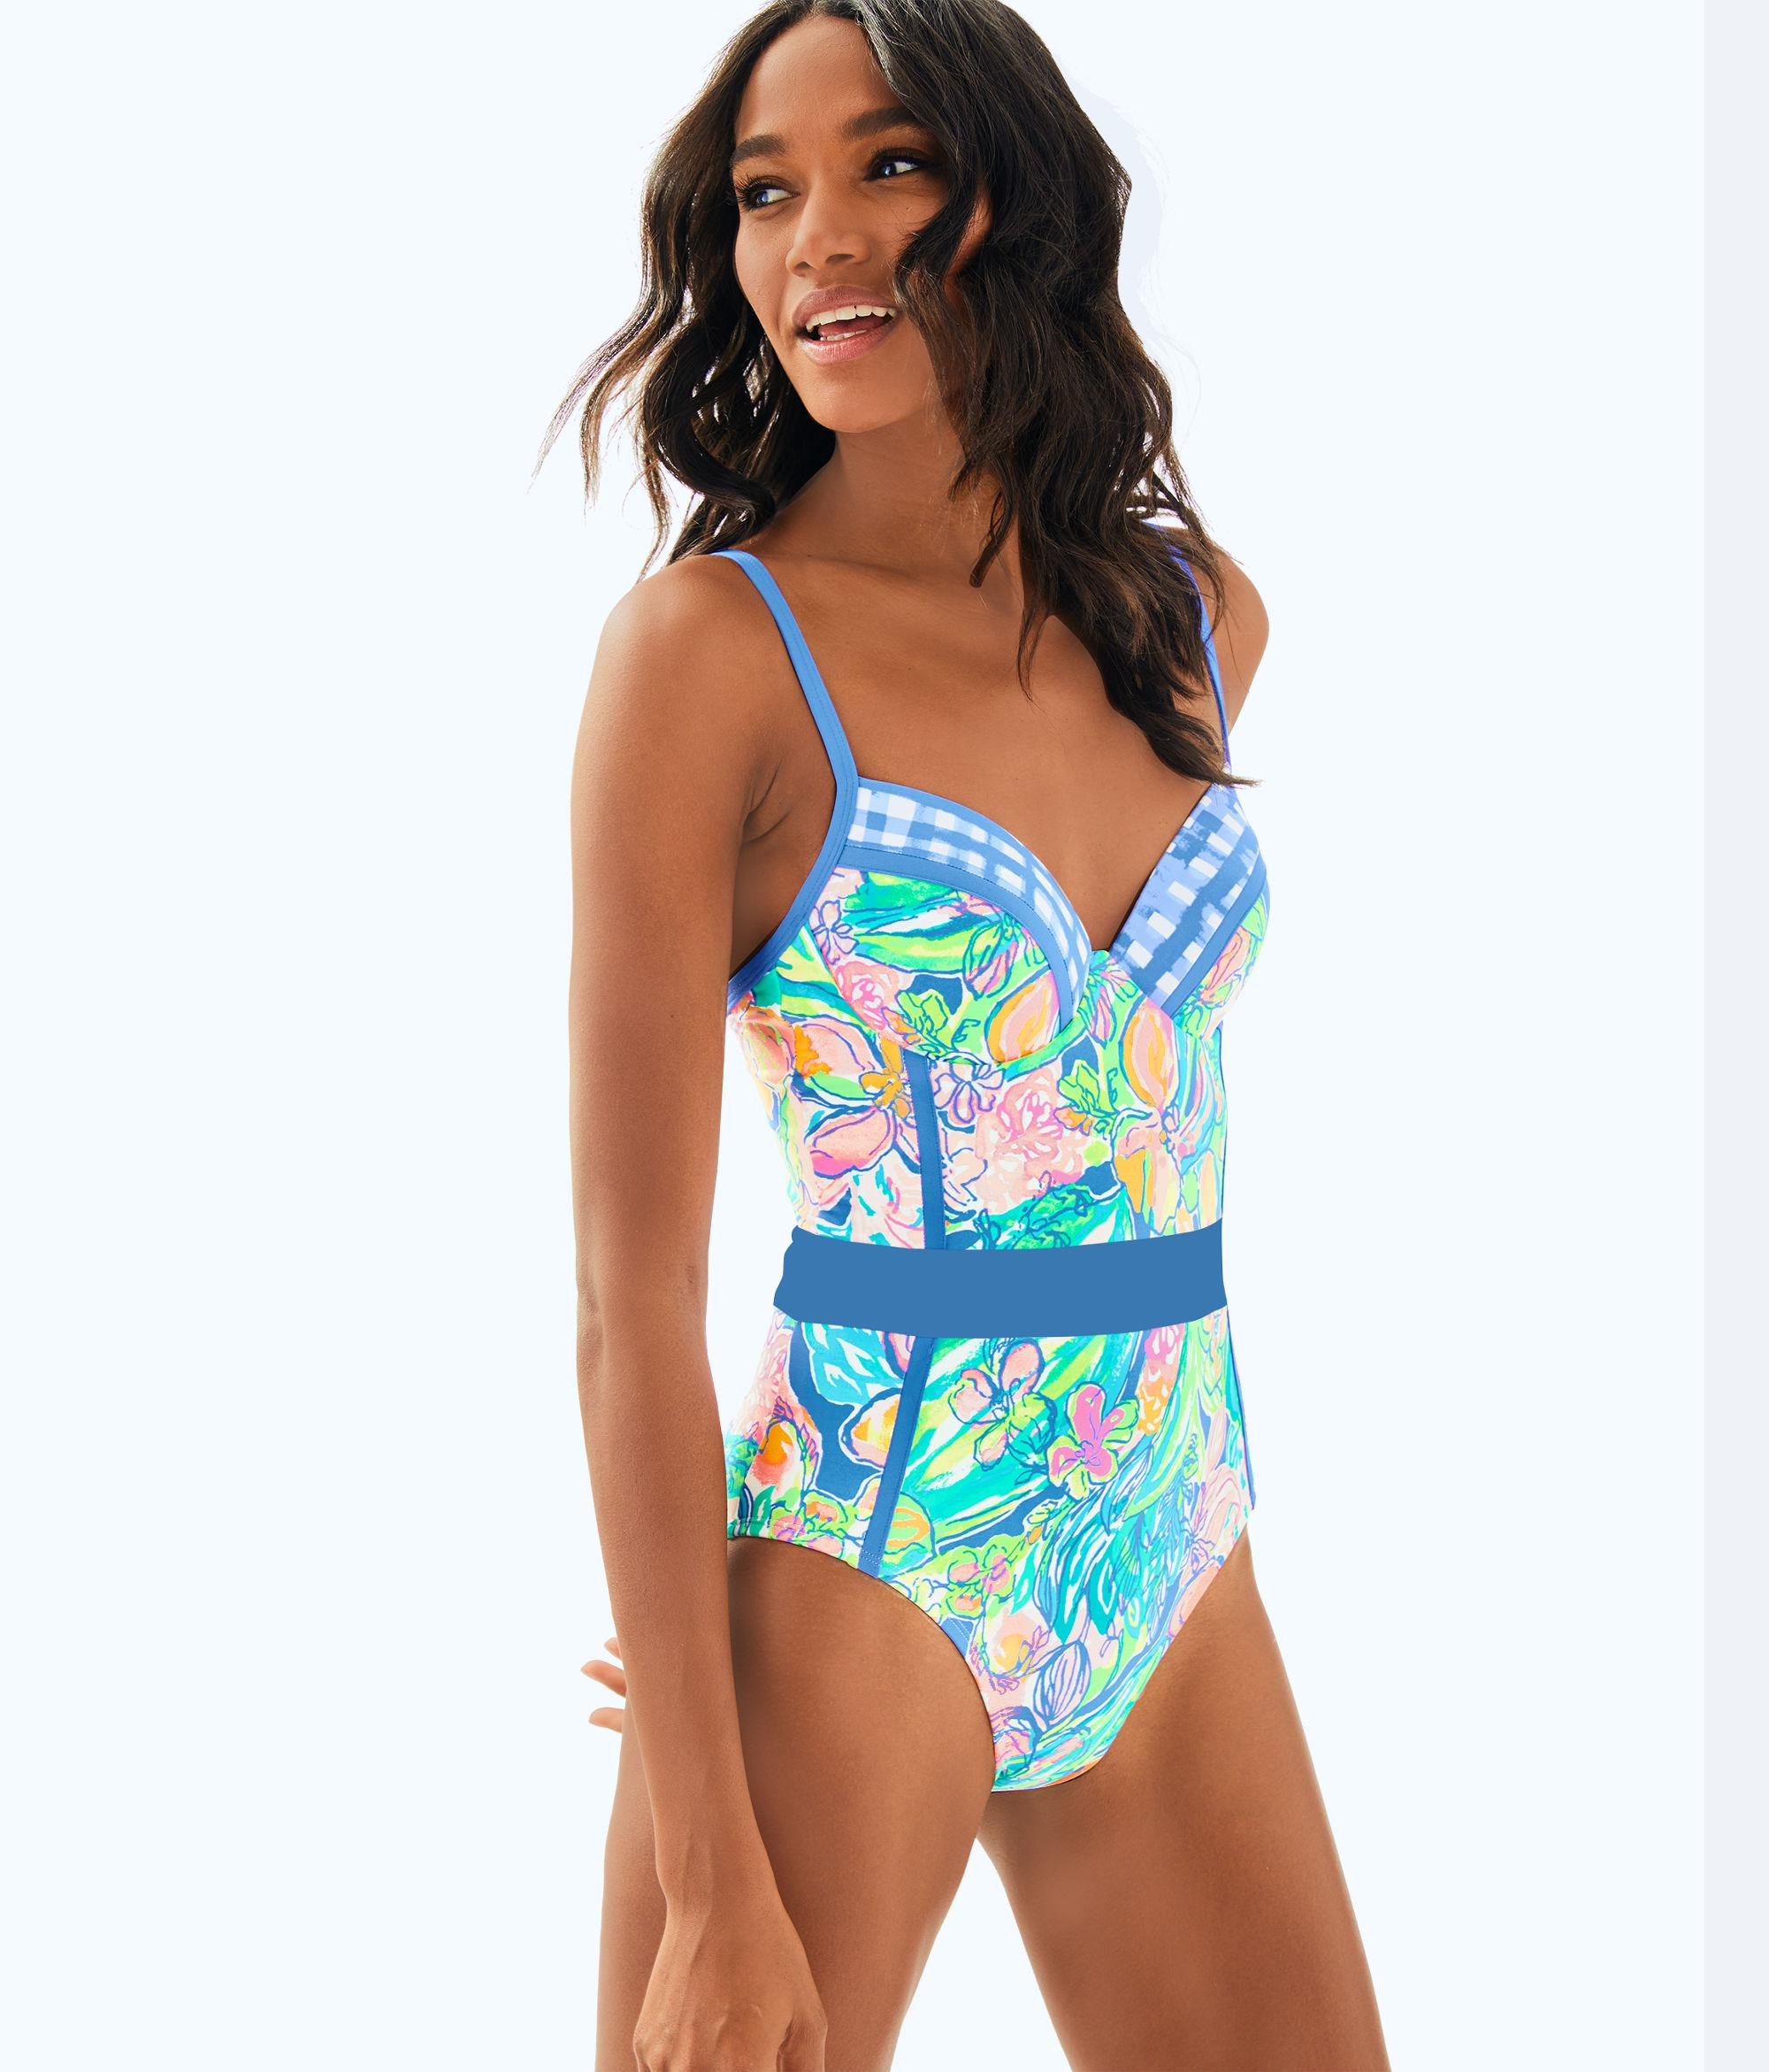 6c41813dcd80b Lyst lilly pulitzer palma one piece swimsuit in blue jpg 2000x2342 Lilly  pulitzer halter swimsuits